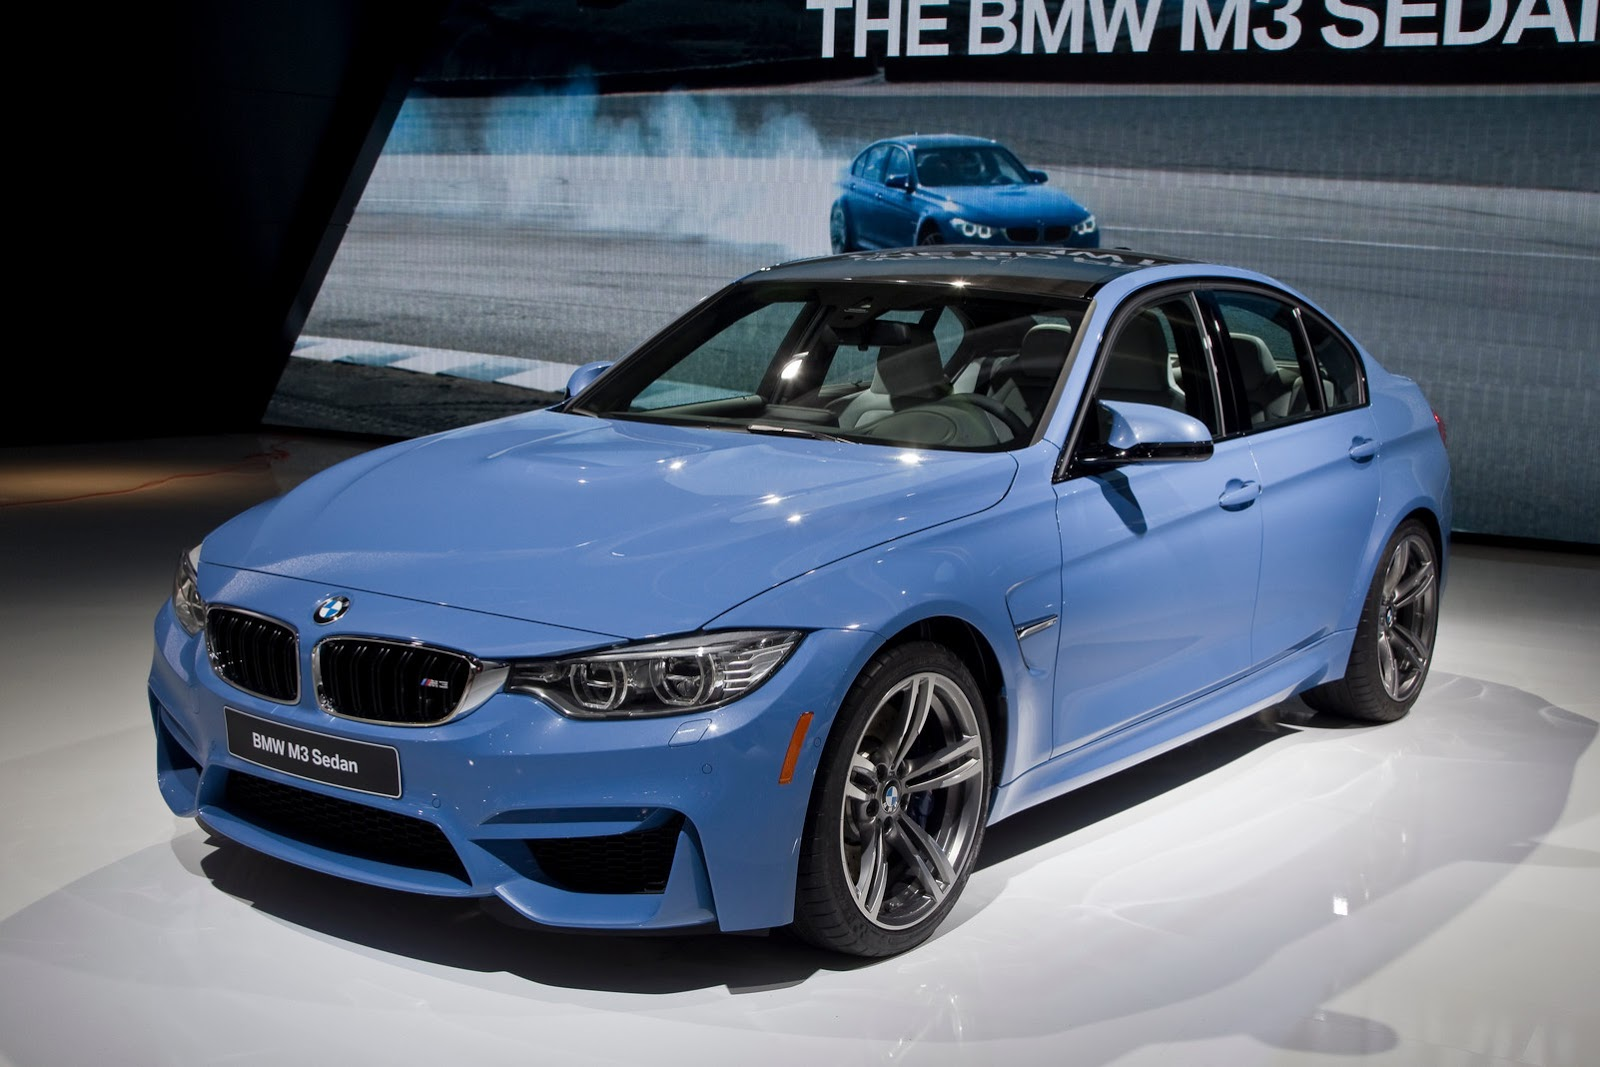 2019 BMW M3 Coupe photo - 4